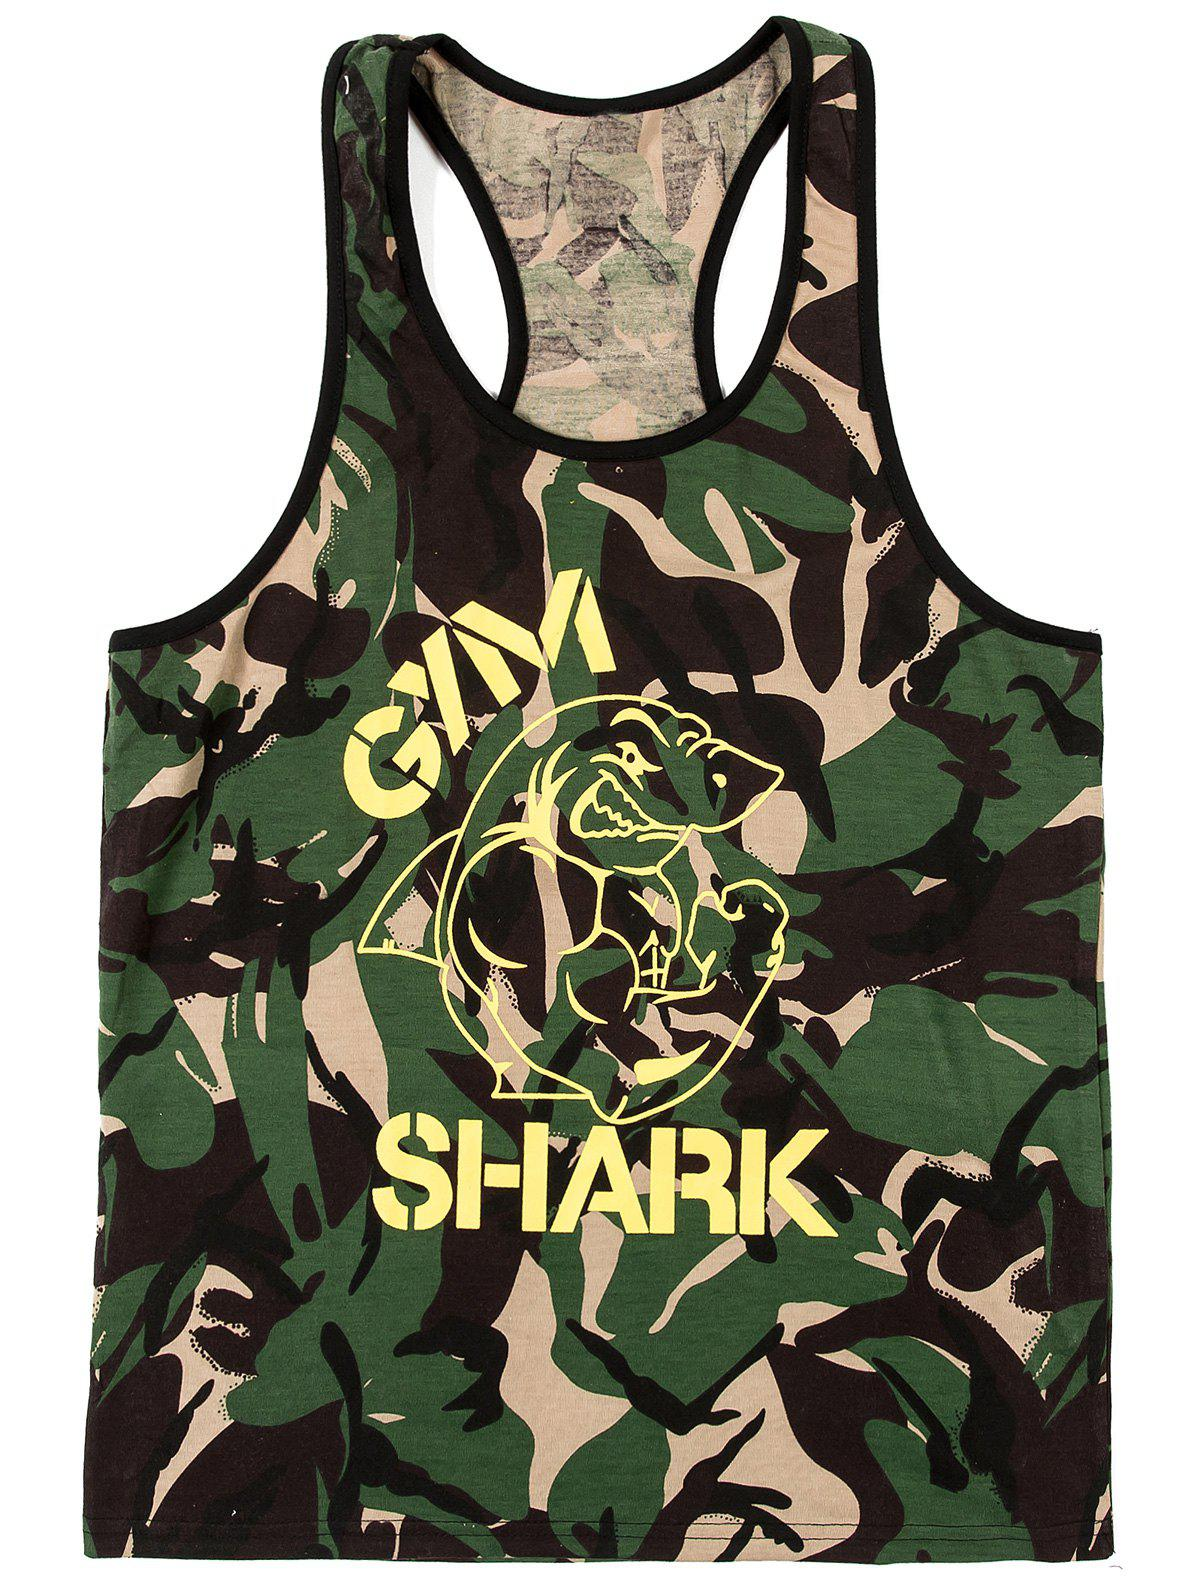 Fashion Camouflage Printing Men's Tank Top - CAMOUFLAGE 2XL